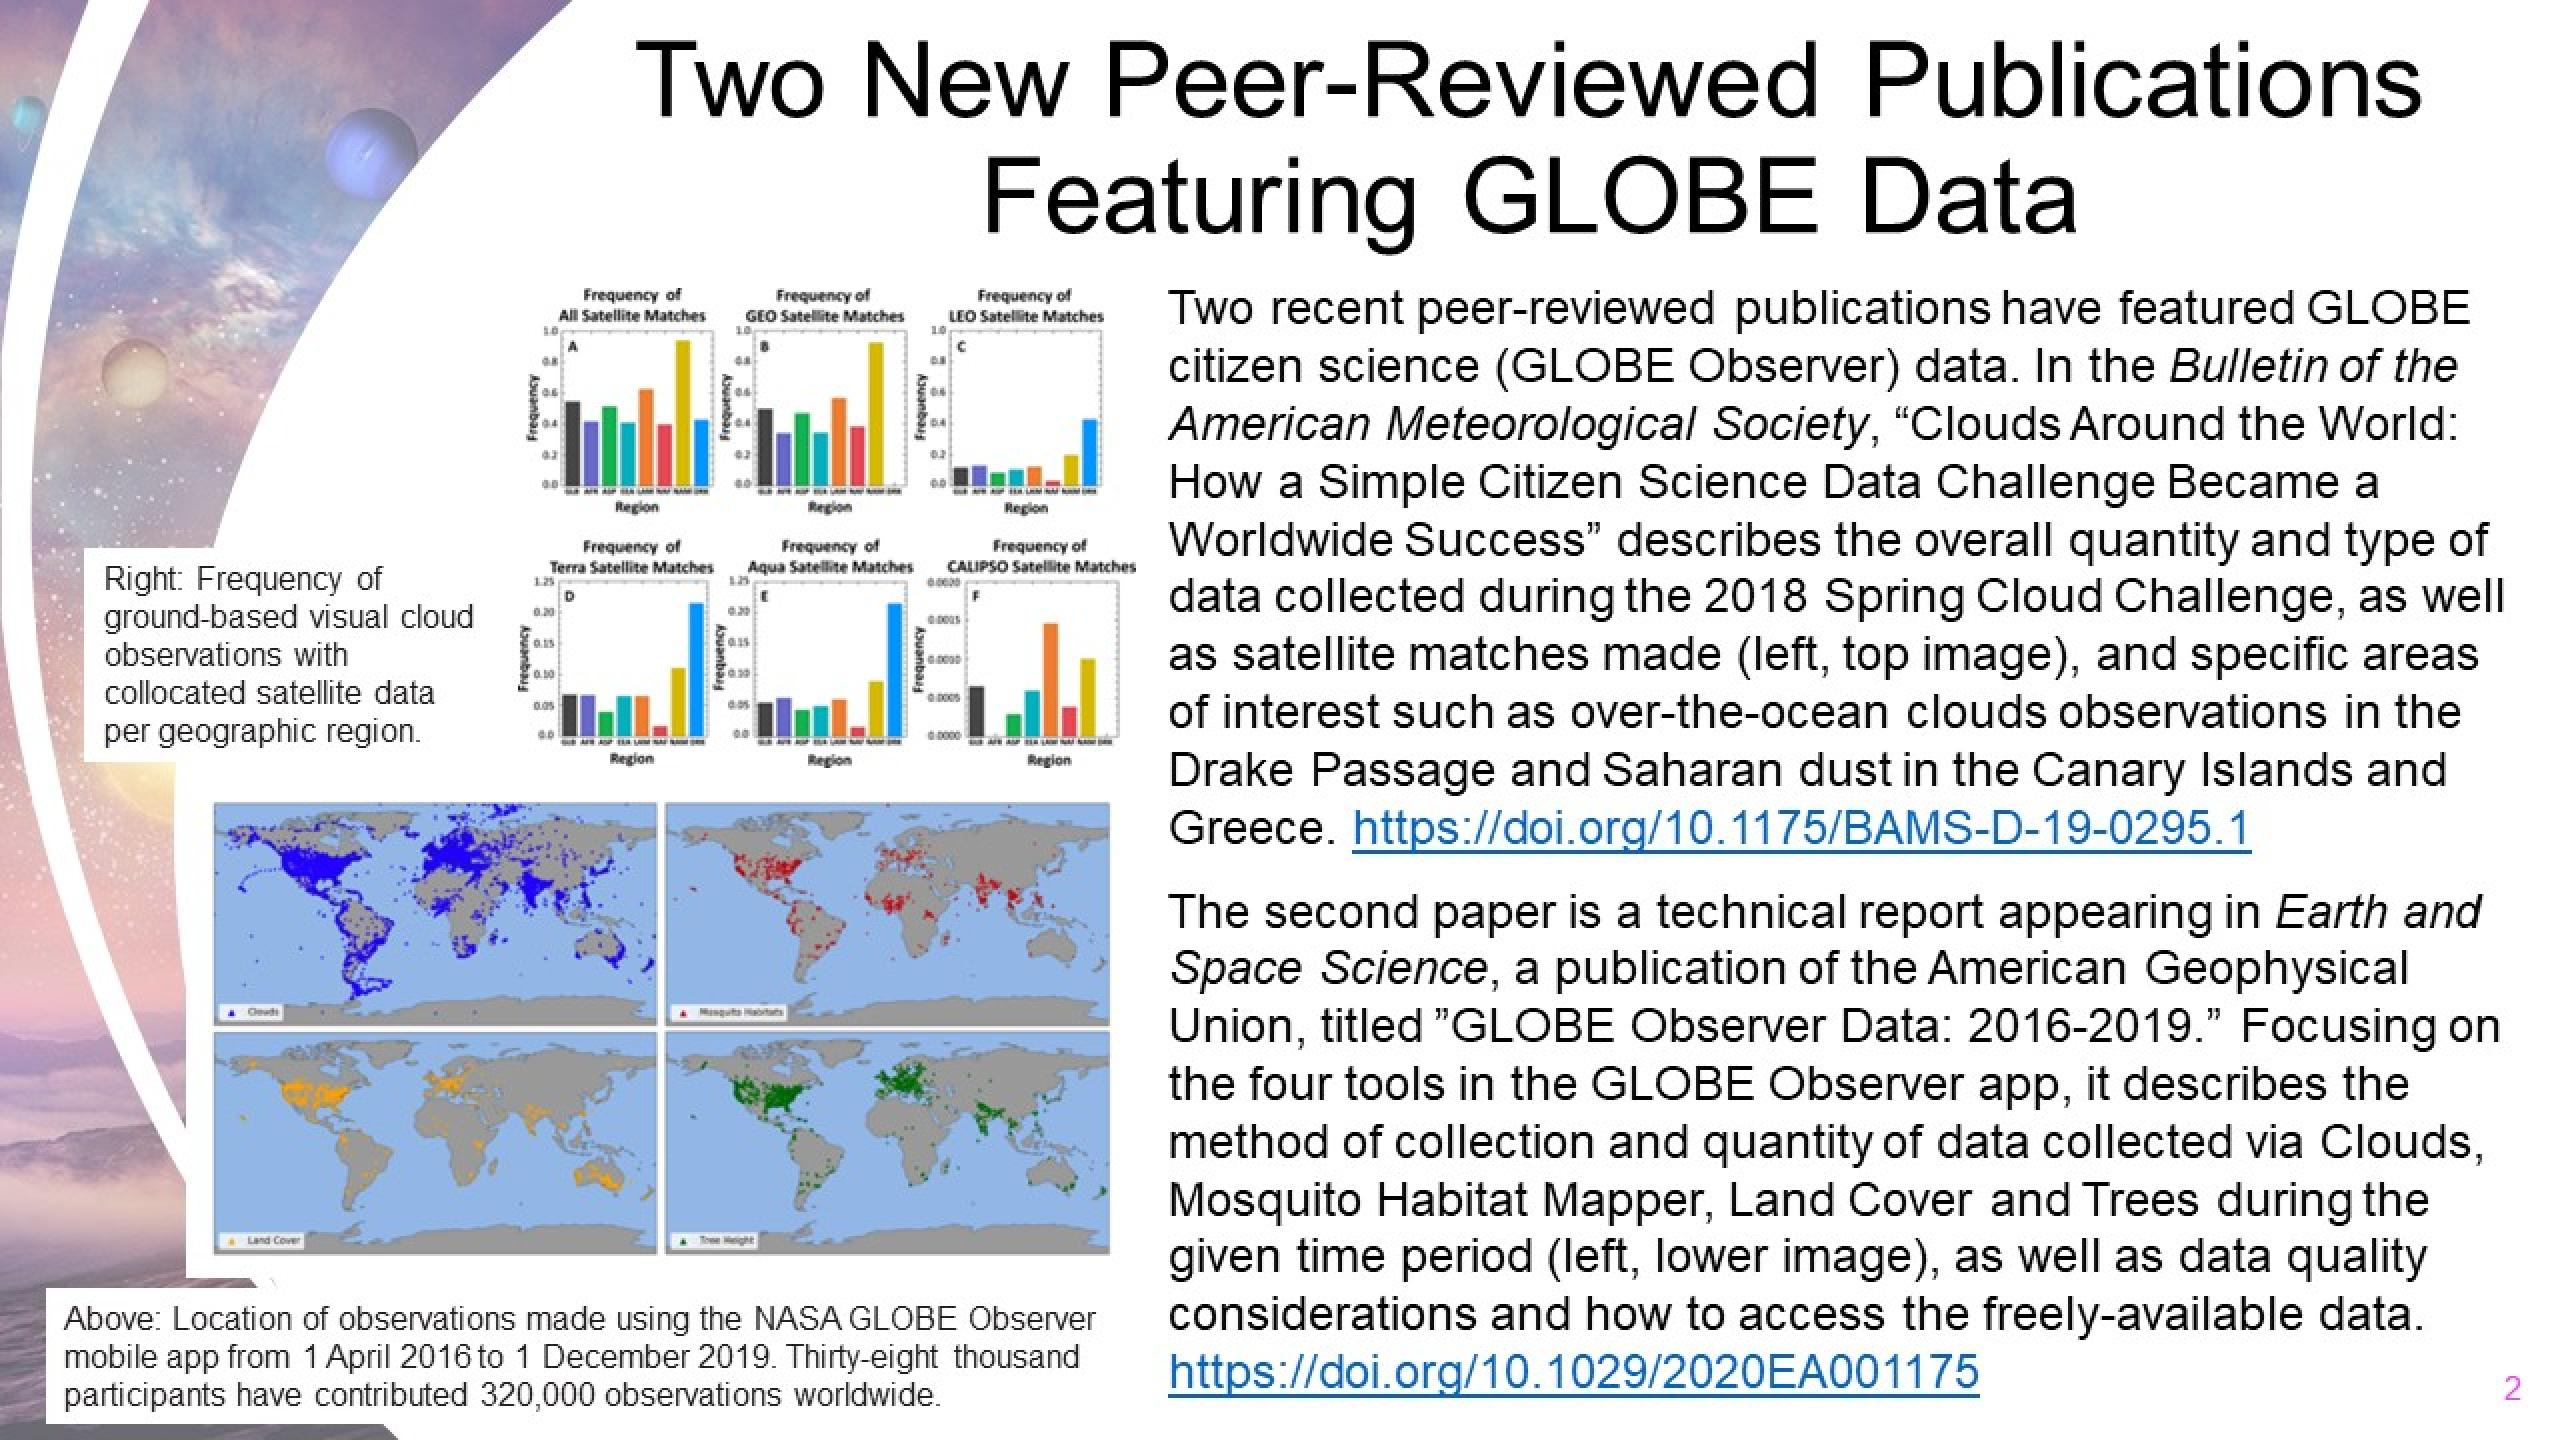 """Slide titled """"Two New Peer-Reviewed Publications featuring GLOBE Data"""". One figure is a set of 6 bar graphs with the caption """"Frequency of ground-based visual cloud observations with collocated satellite data per geographic region."""" The other figure is a set of 4 global maps with the caption """"Location of observations made using the NASA GLOBE Observer mobile app from 1 April 2016 to 1 December 2019. Thirty-eight thousand participants have contributed 320,000 observations worldwide."""""""